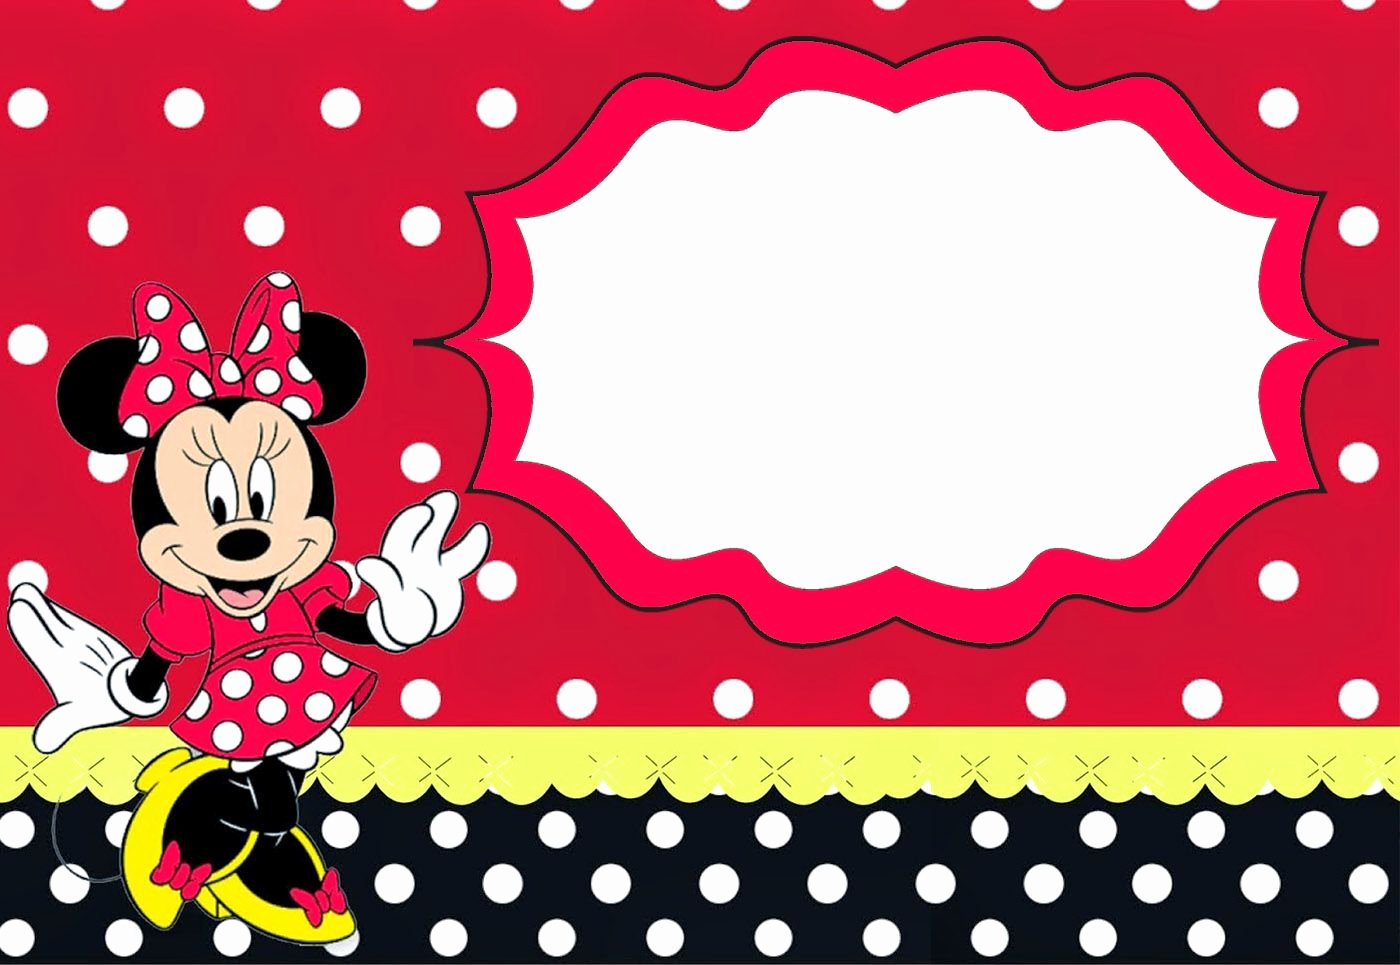 Free Minnie Mouse Templates Luxury Minnie Mouse Birthday Party Invitation Template